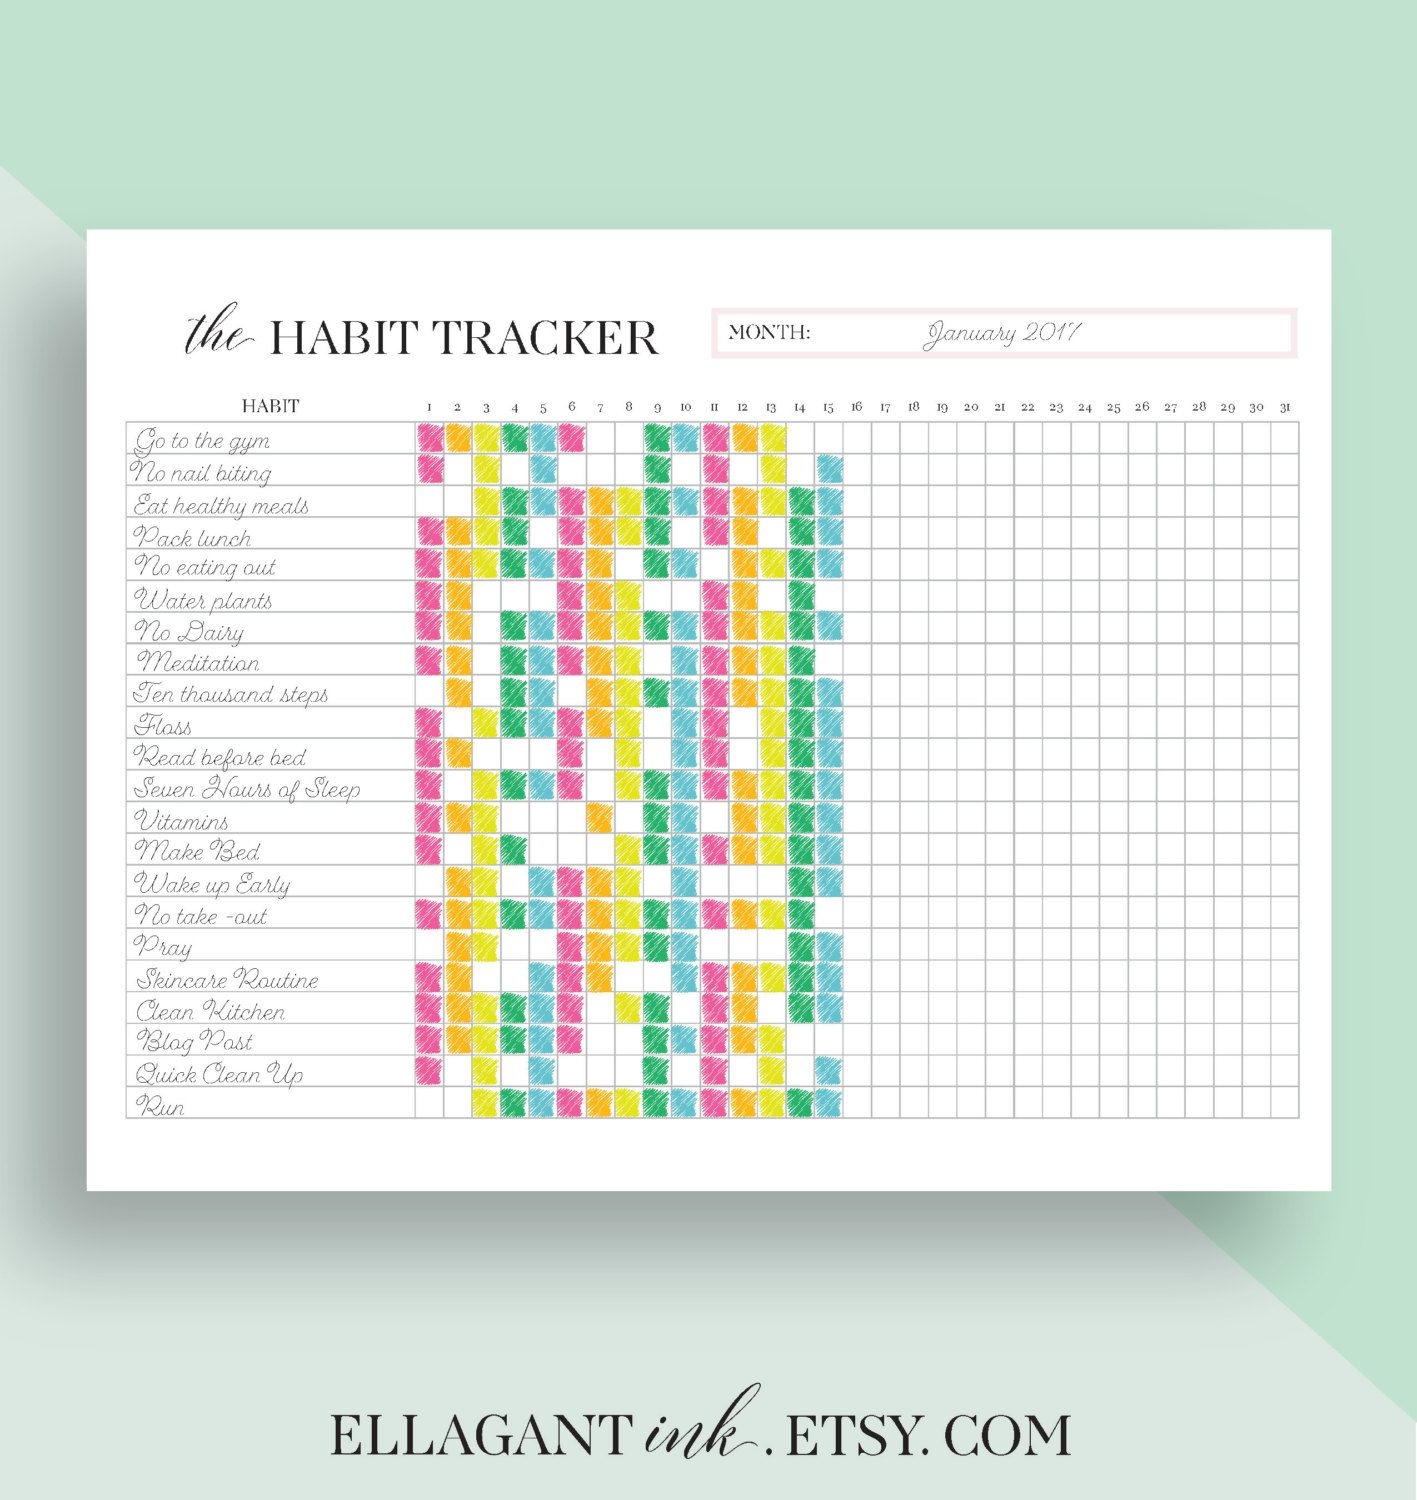 Habit Tracker Printable Daily Habits Planner Planner Inserts A5 A4 Us Letter Size